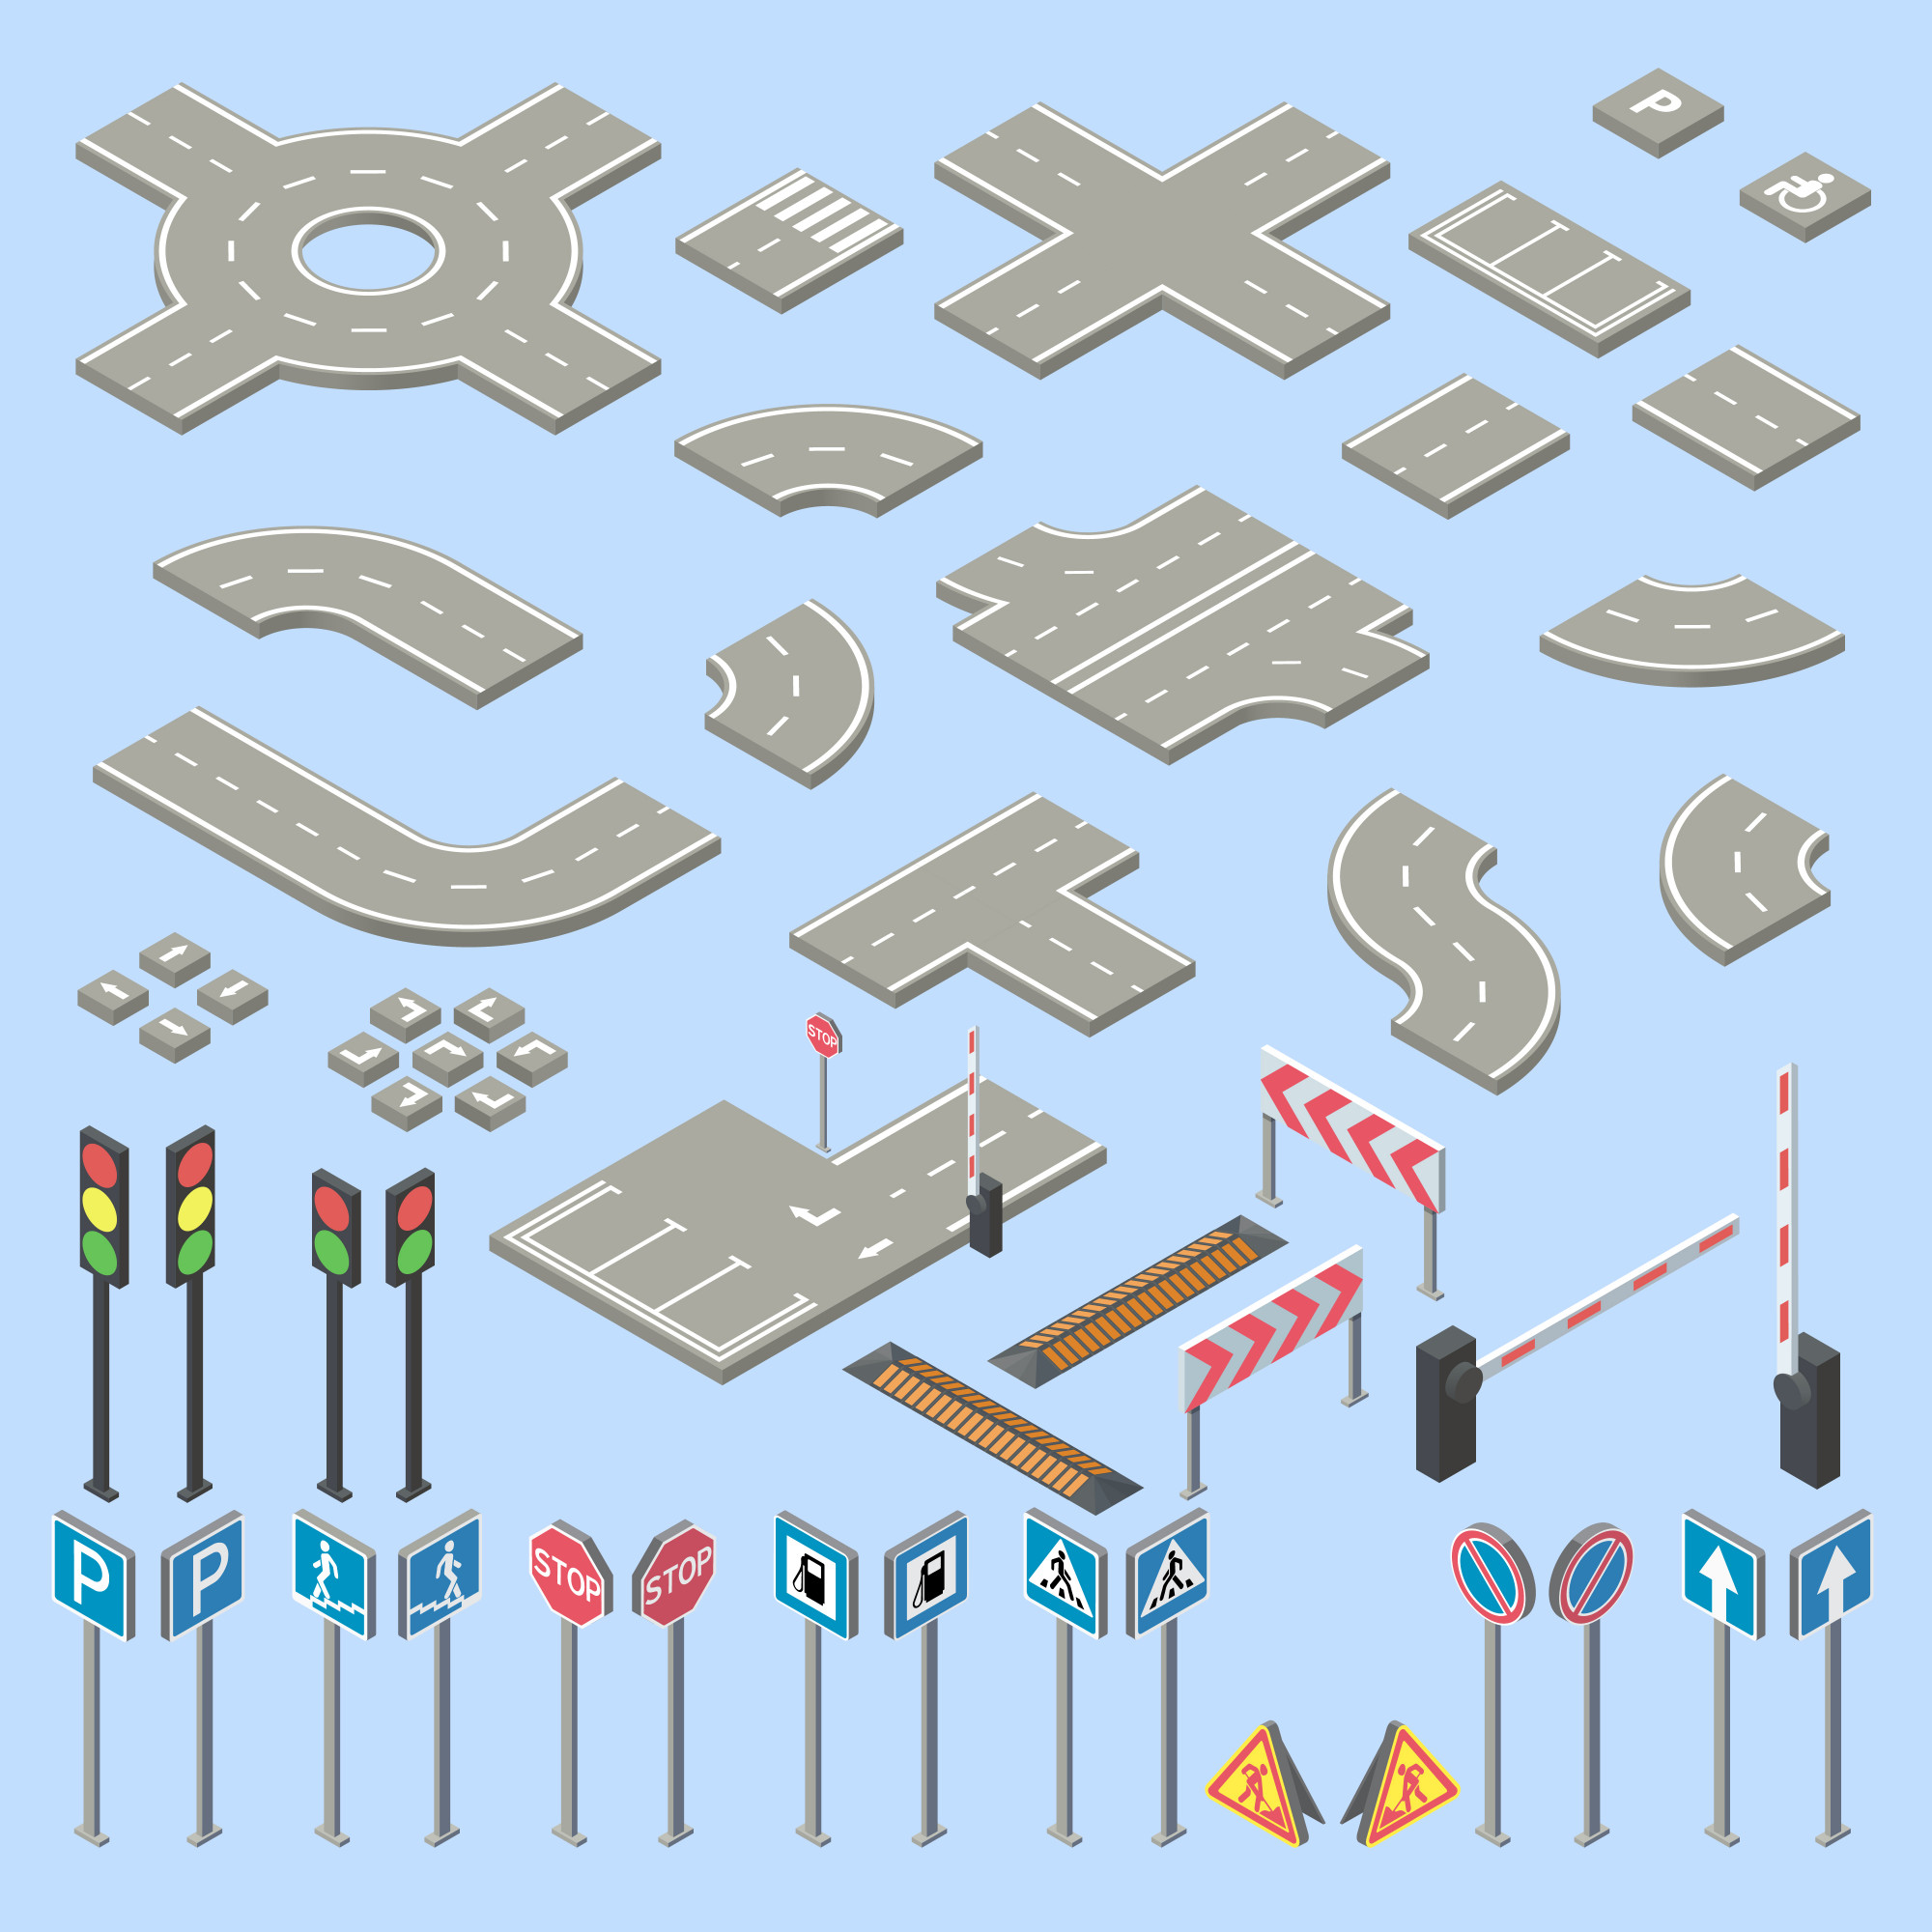 3d isometric road signs collection, pieces of street, highway